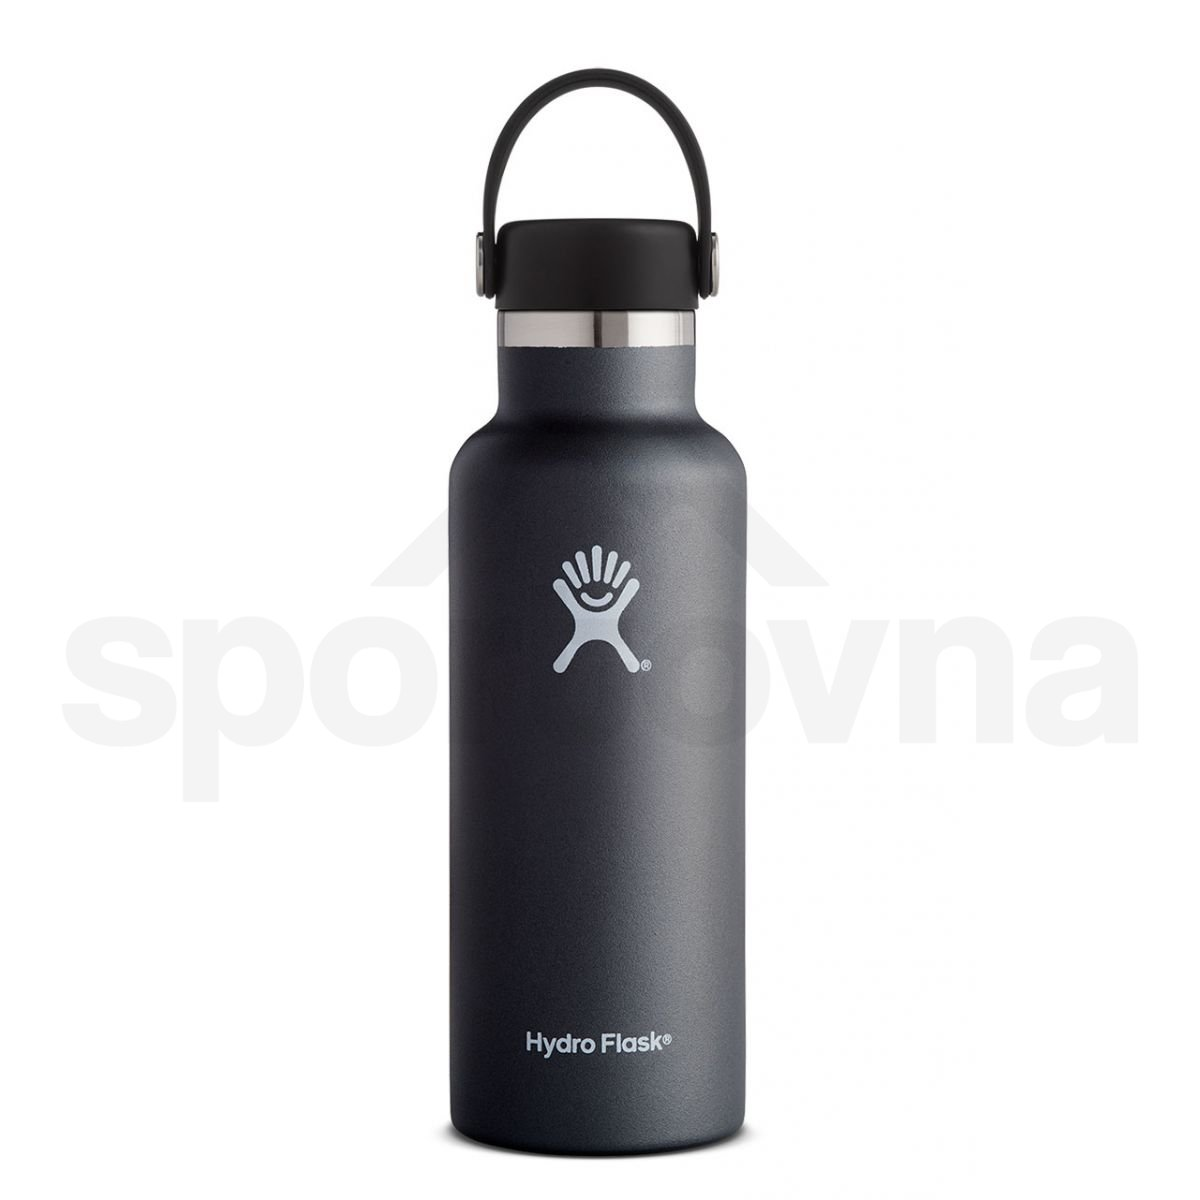 S18SX001 hydro flask 18 black